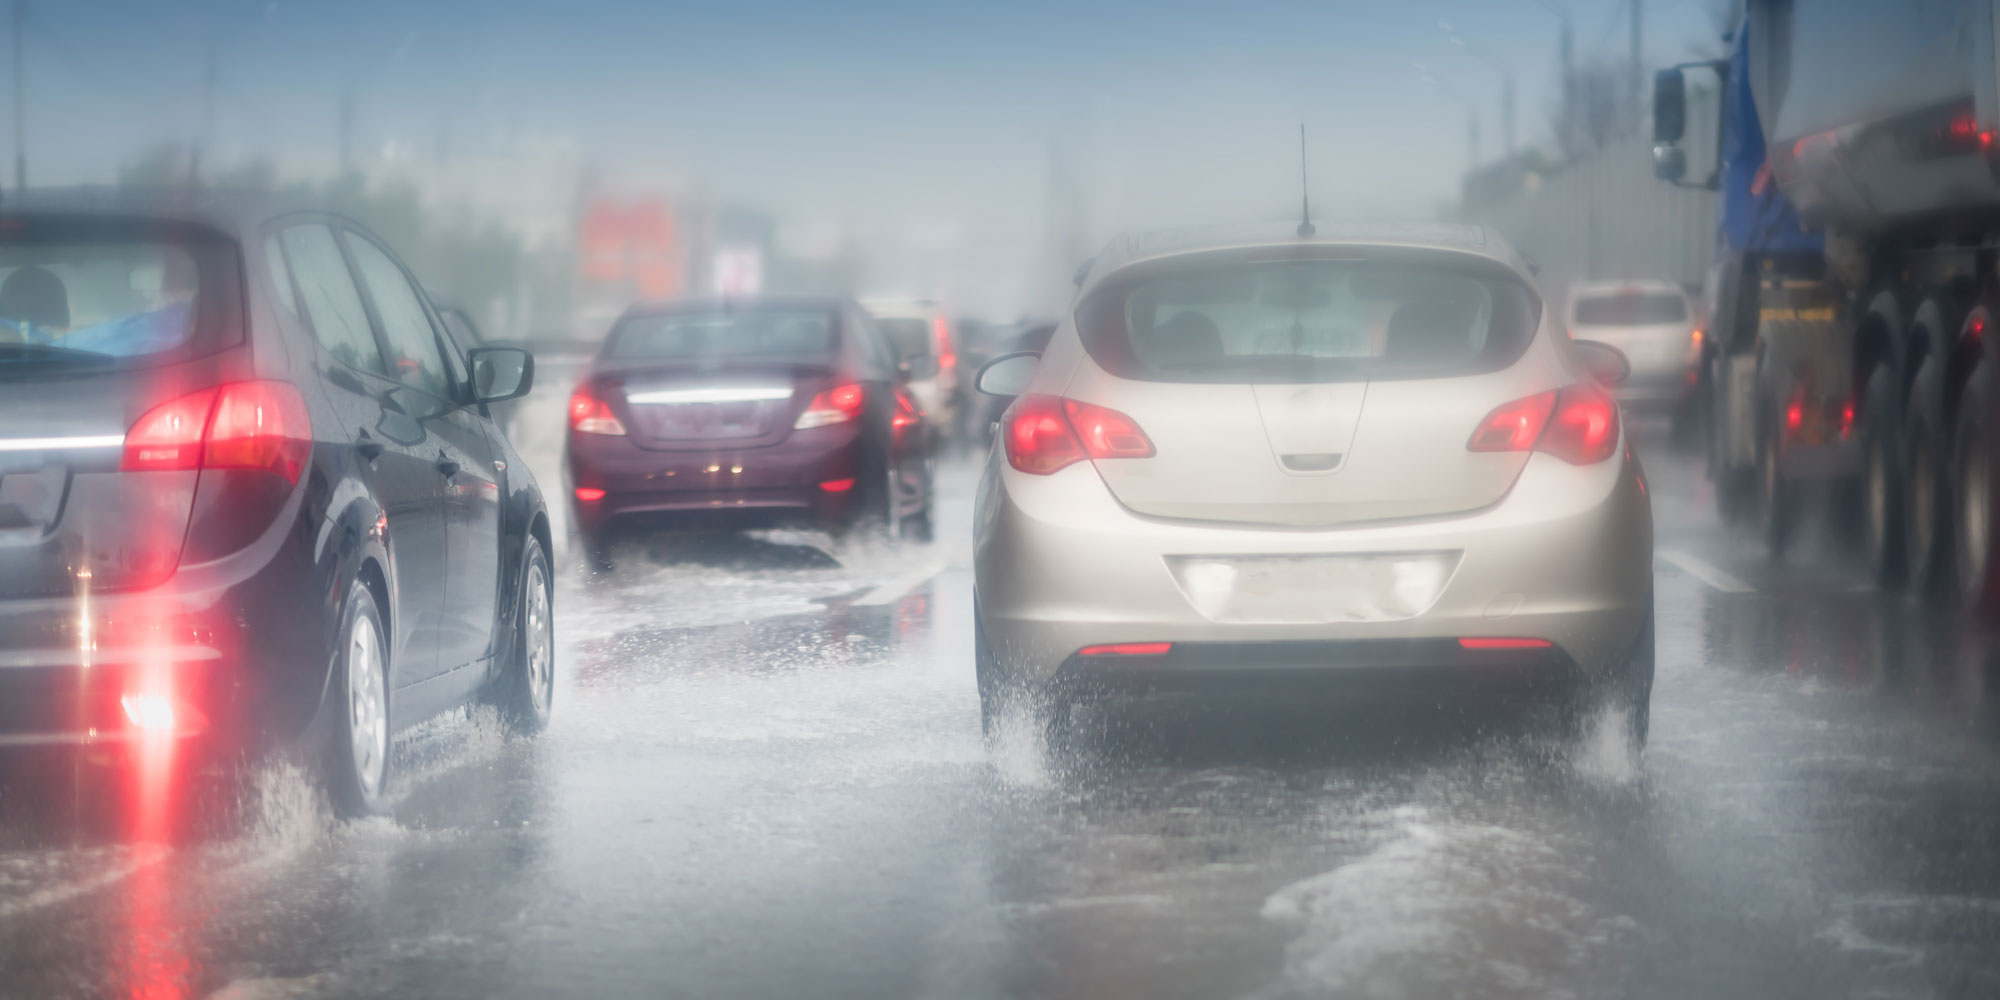 driving in severe weather